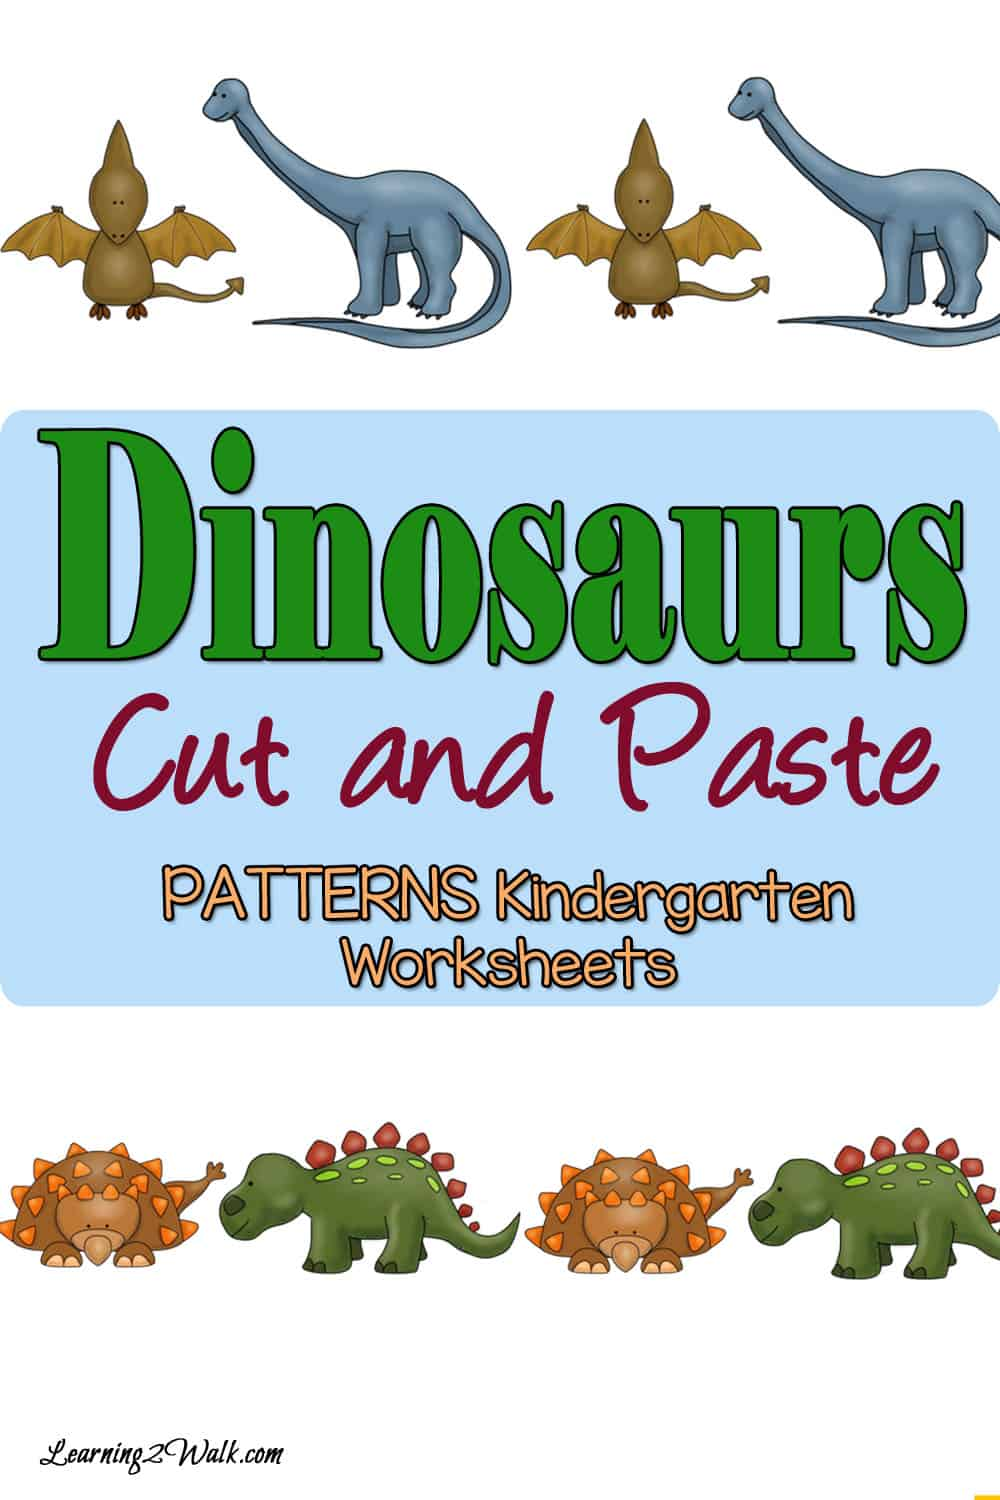 Forest Animals Pattern Worksheets for Kindergarten – Patterning Worksheets for Kindergarten